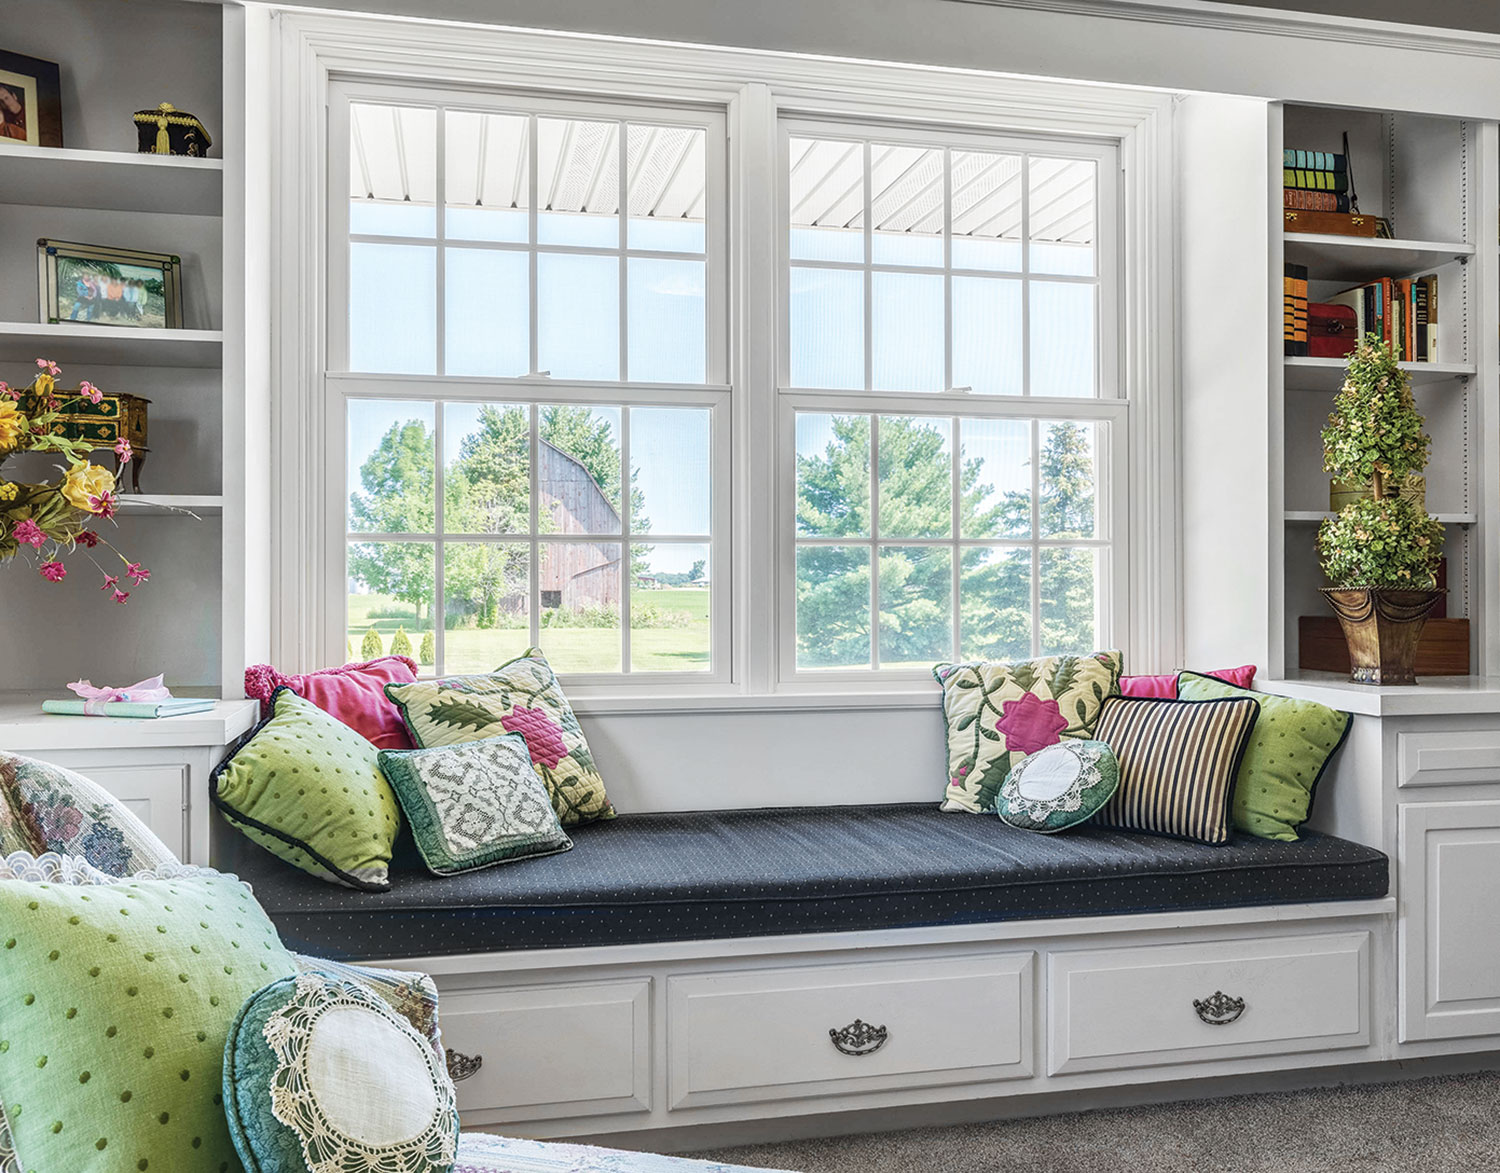 Double Hung Window two wide mull in reading nook.